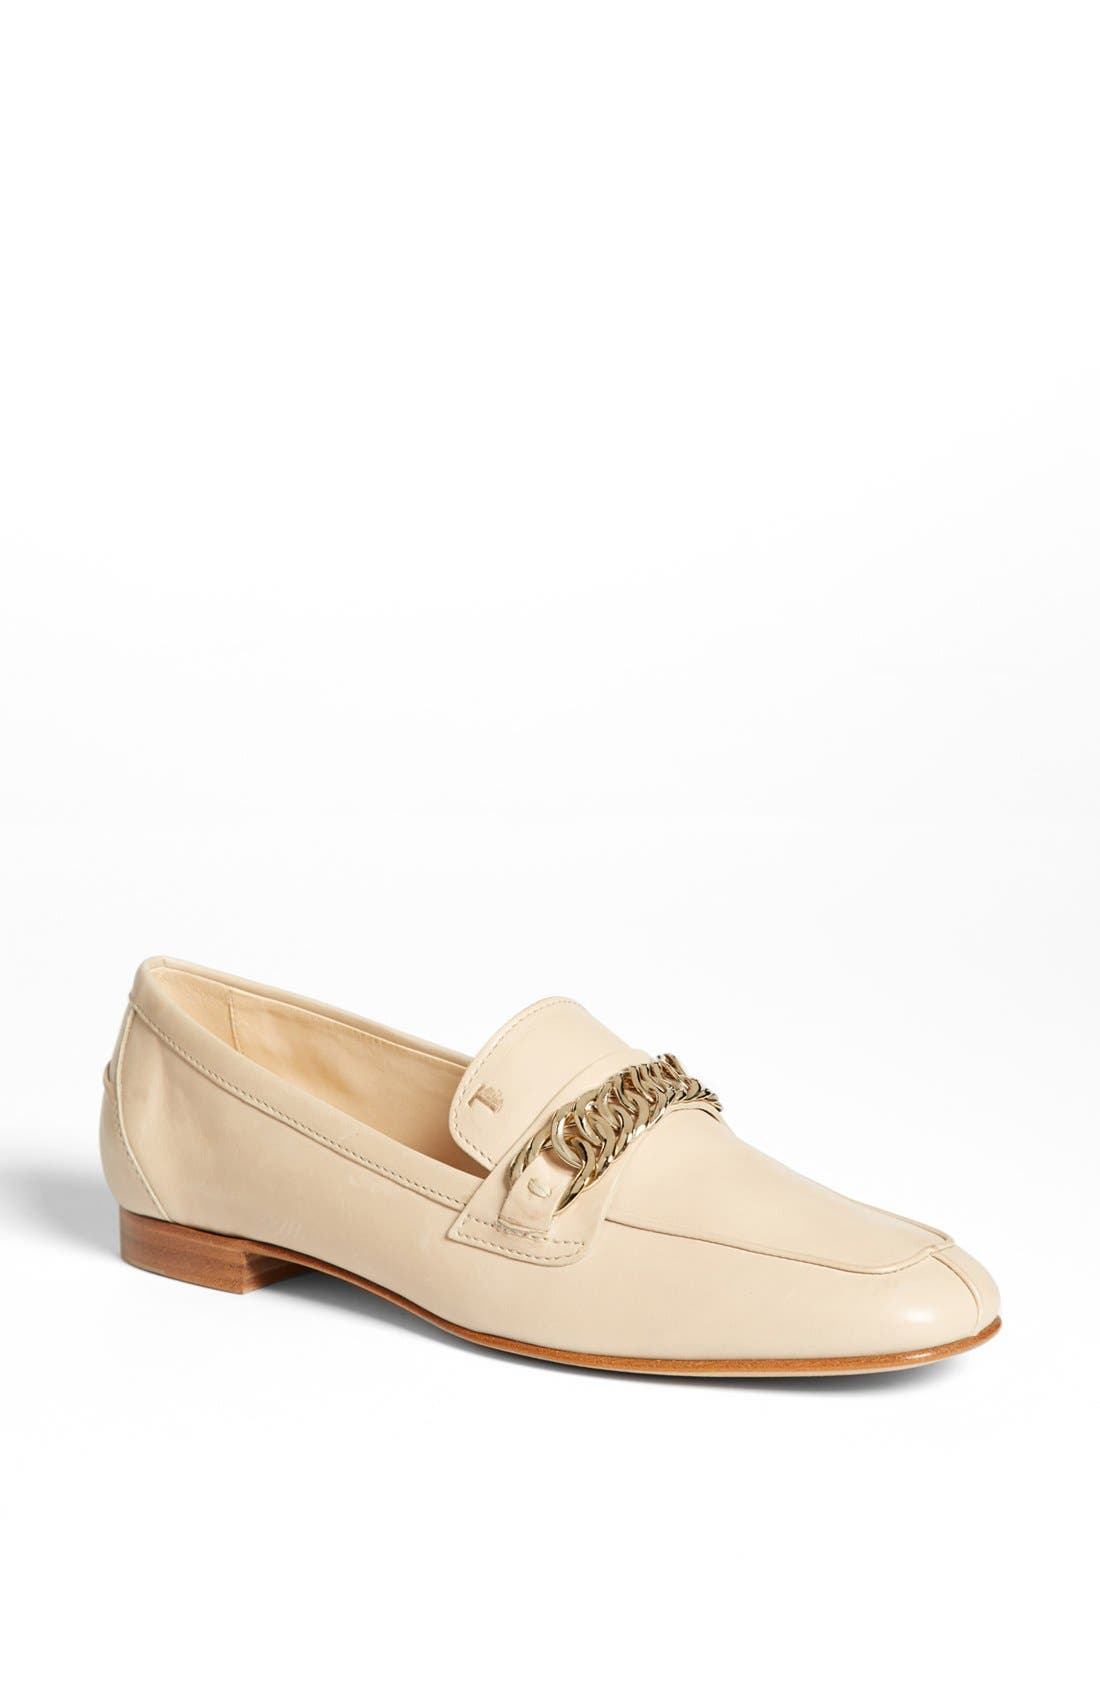 Alternate Image 1 Selected - Tod's Leather Moccasin Loafer